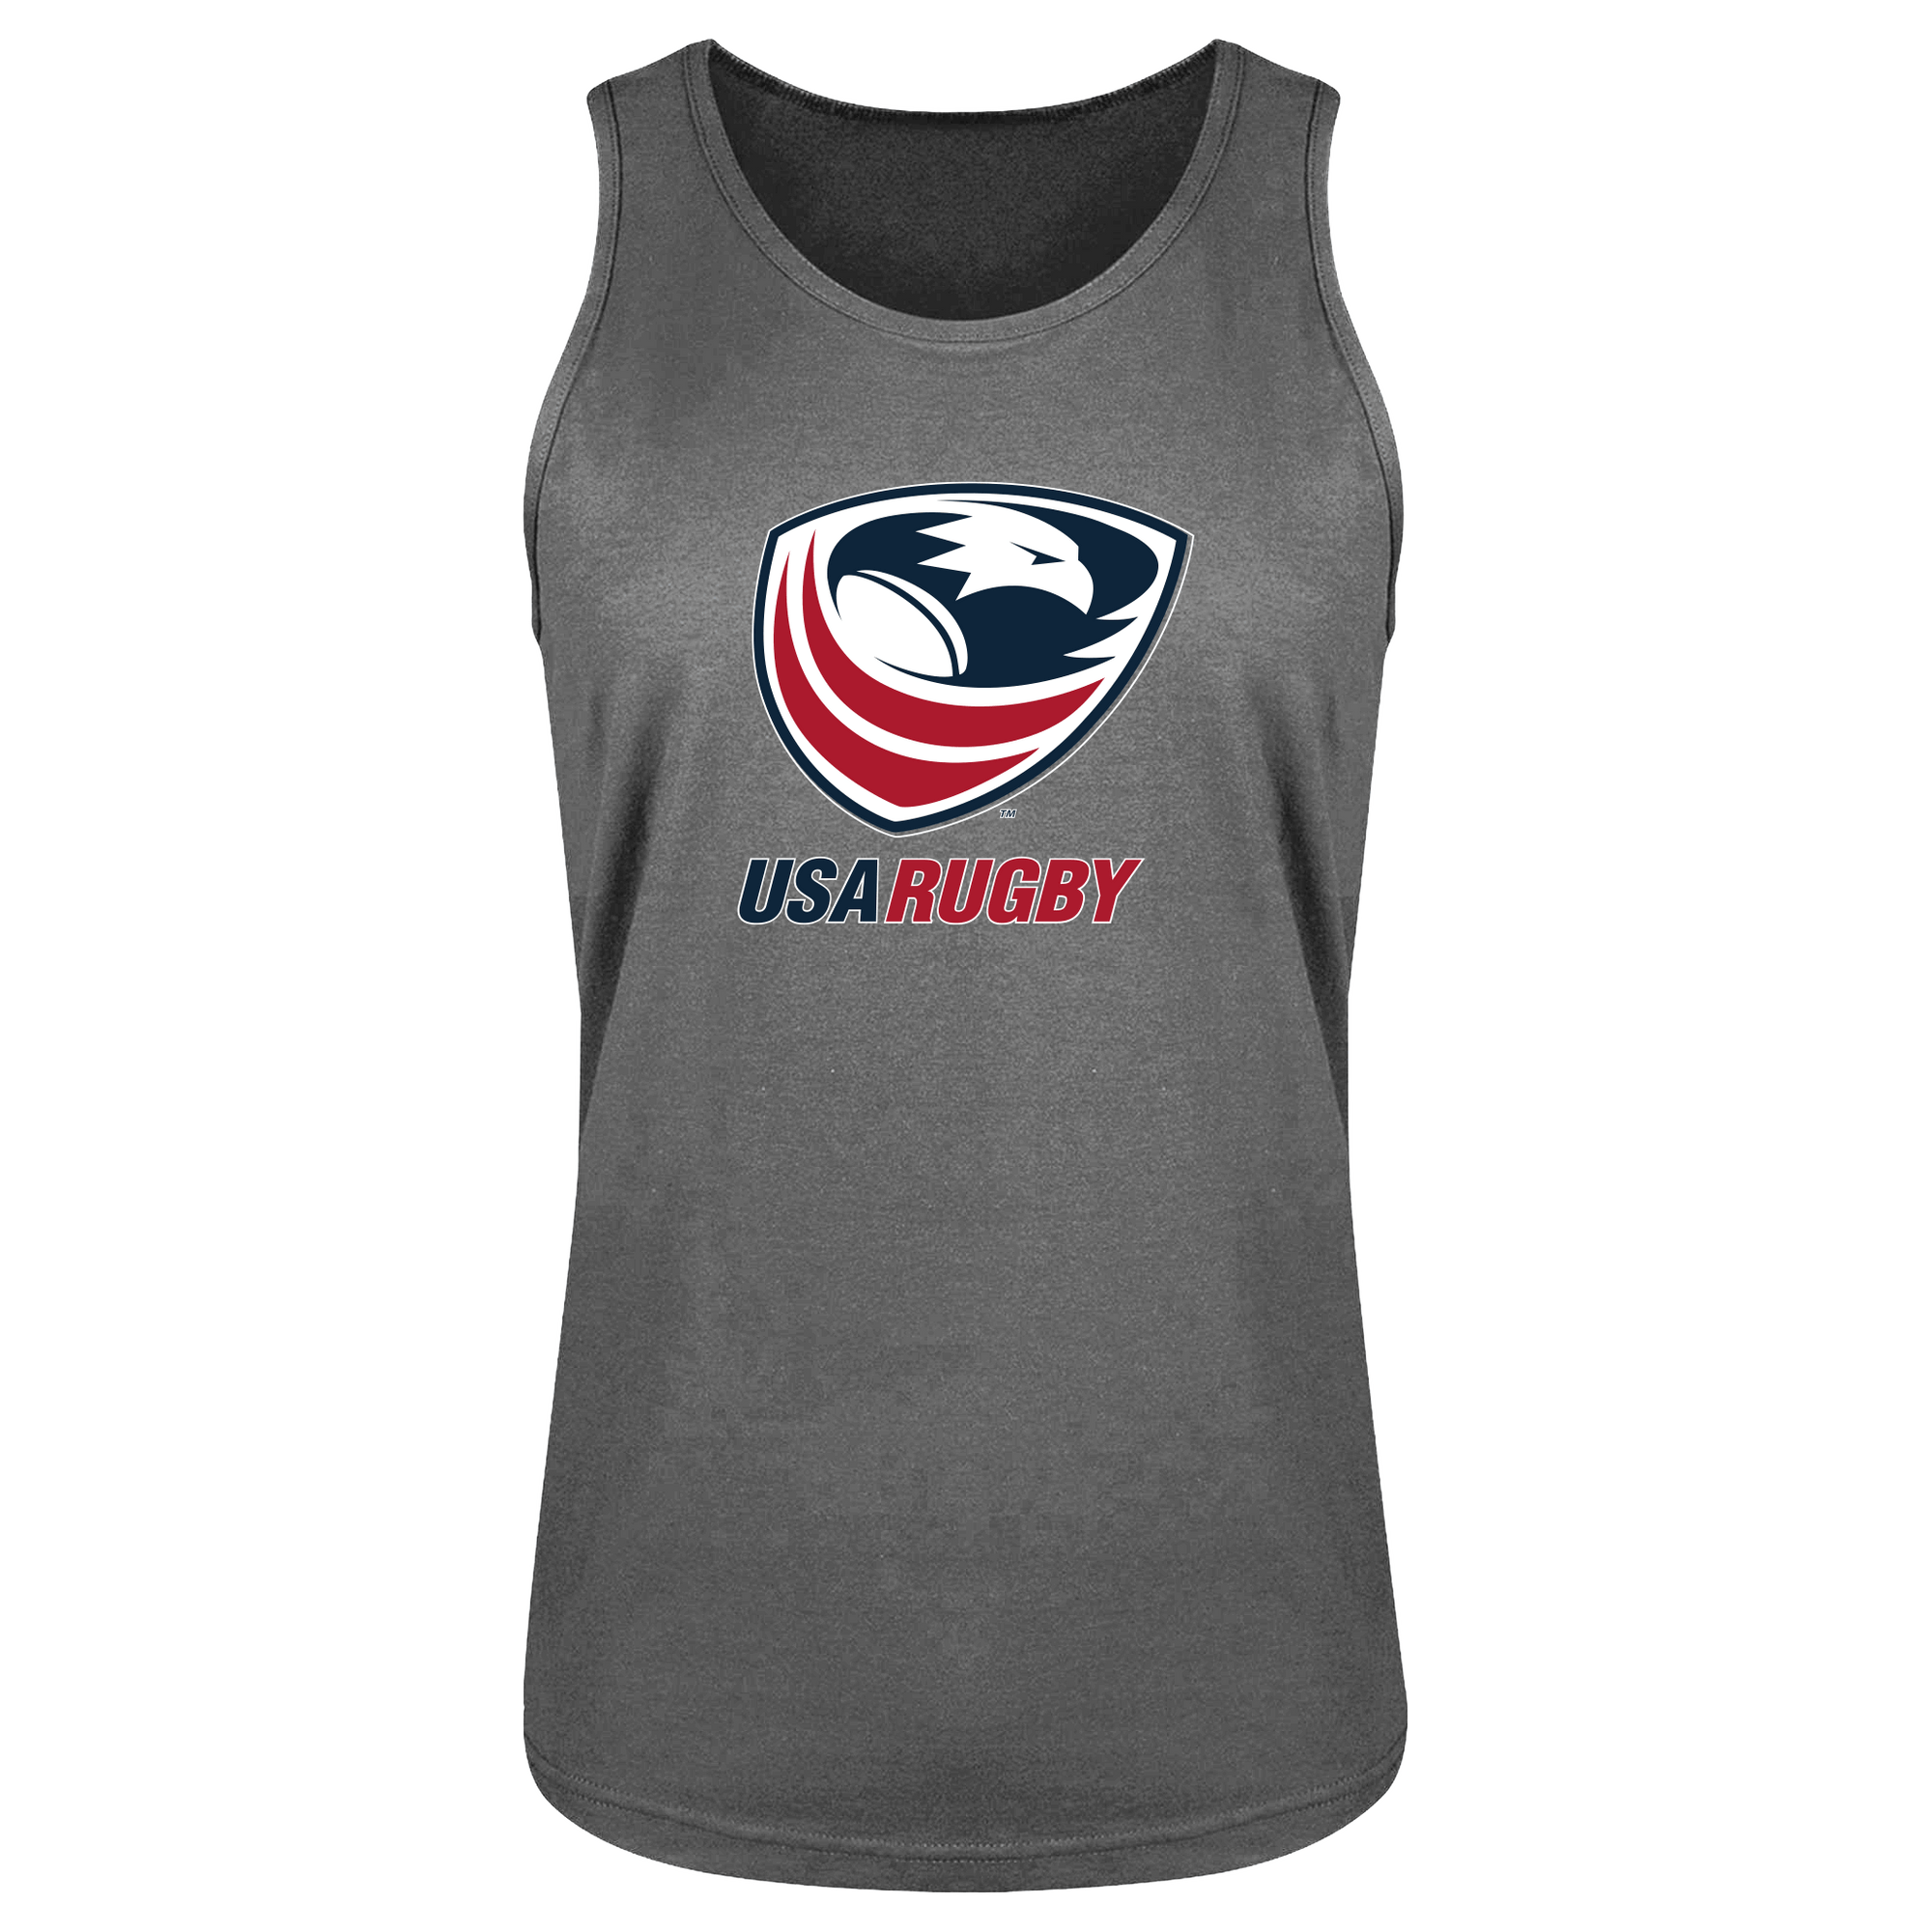 USA Rugby Unisex Bingtang Singlet Grey